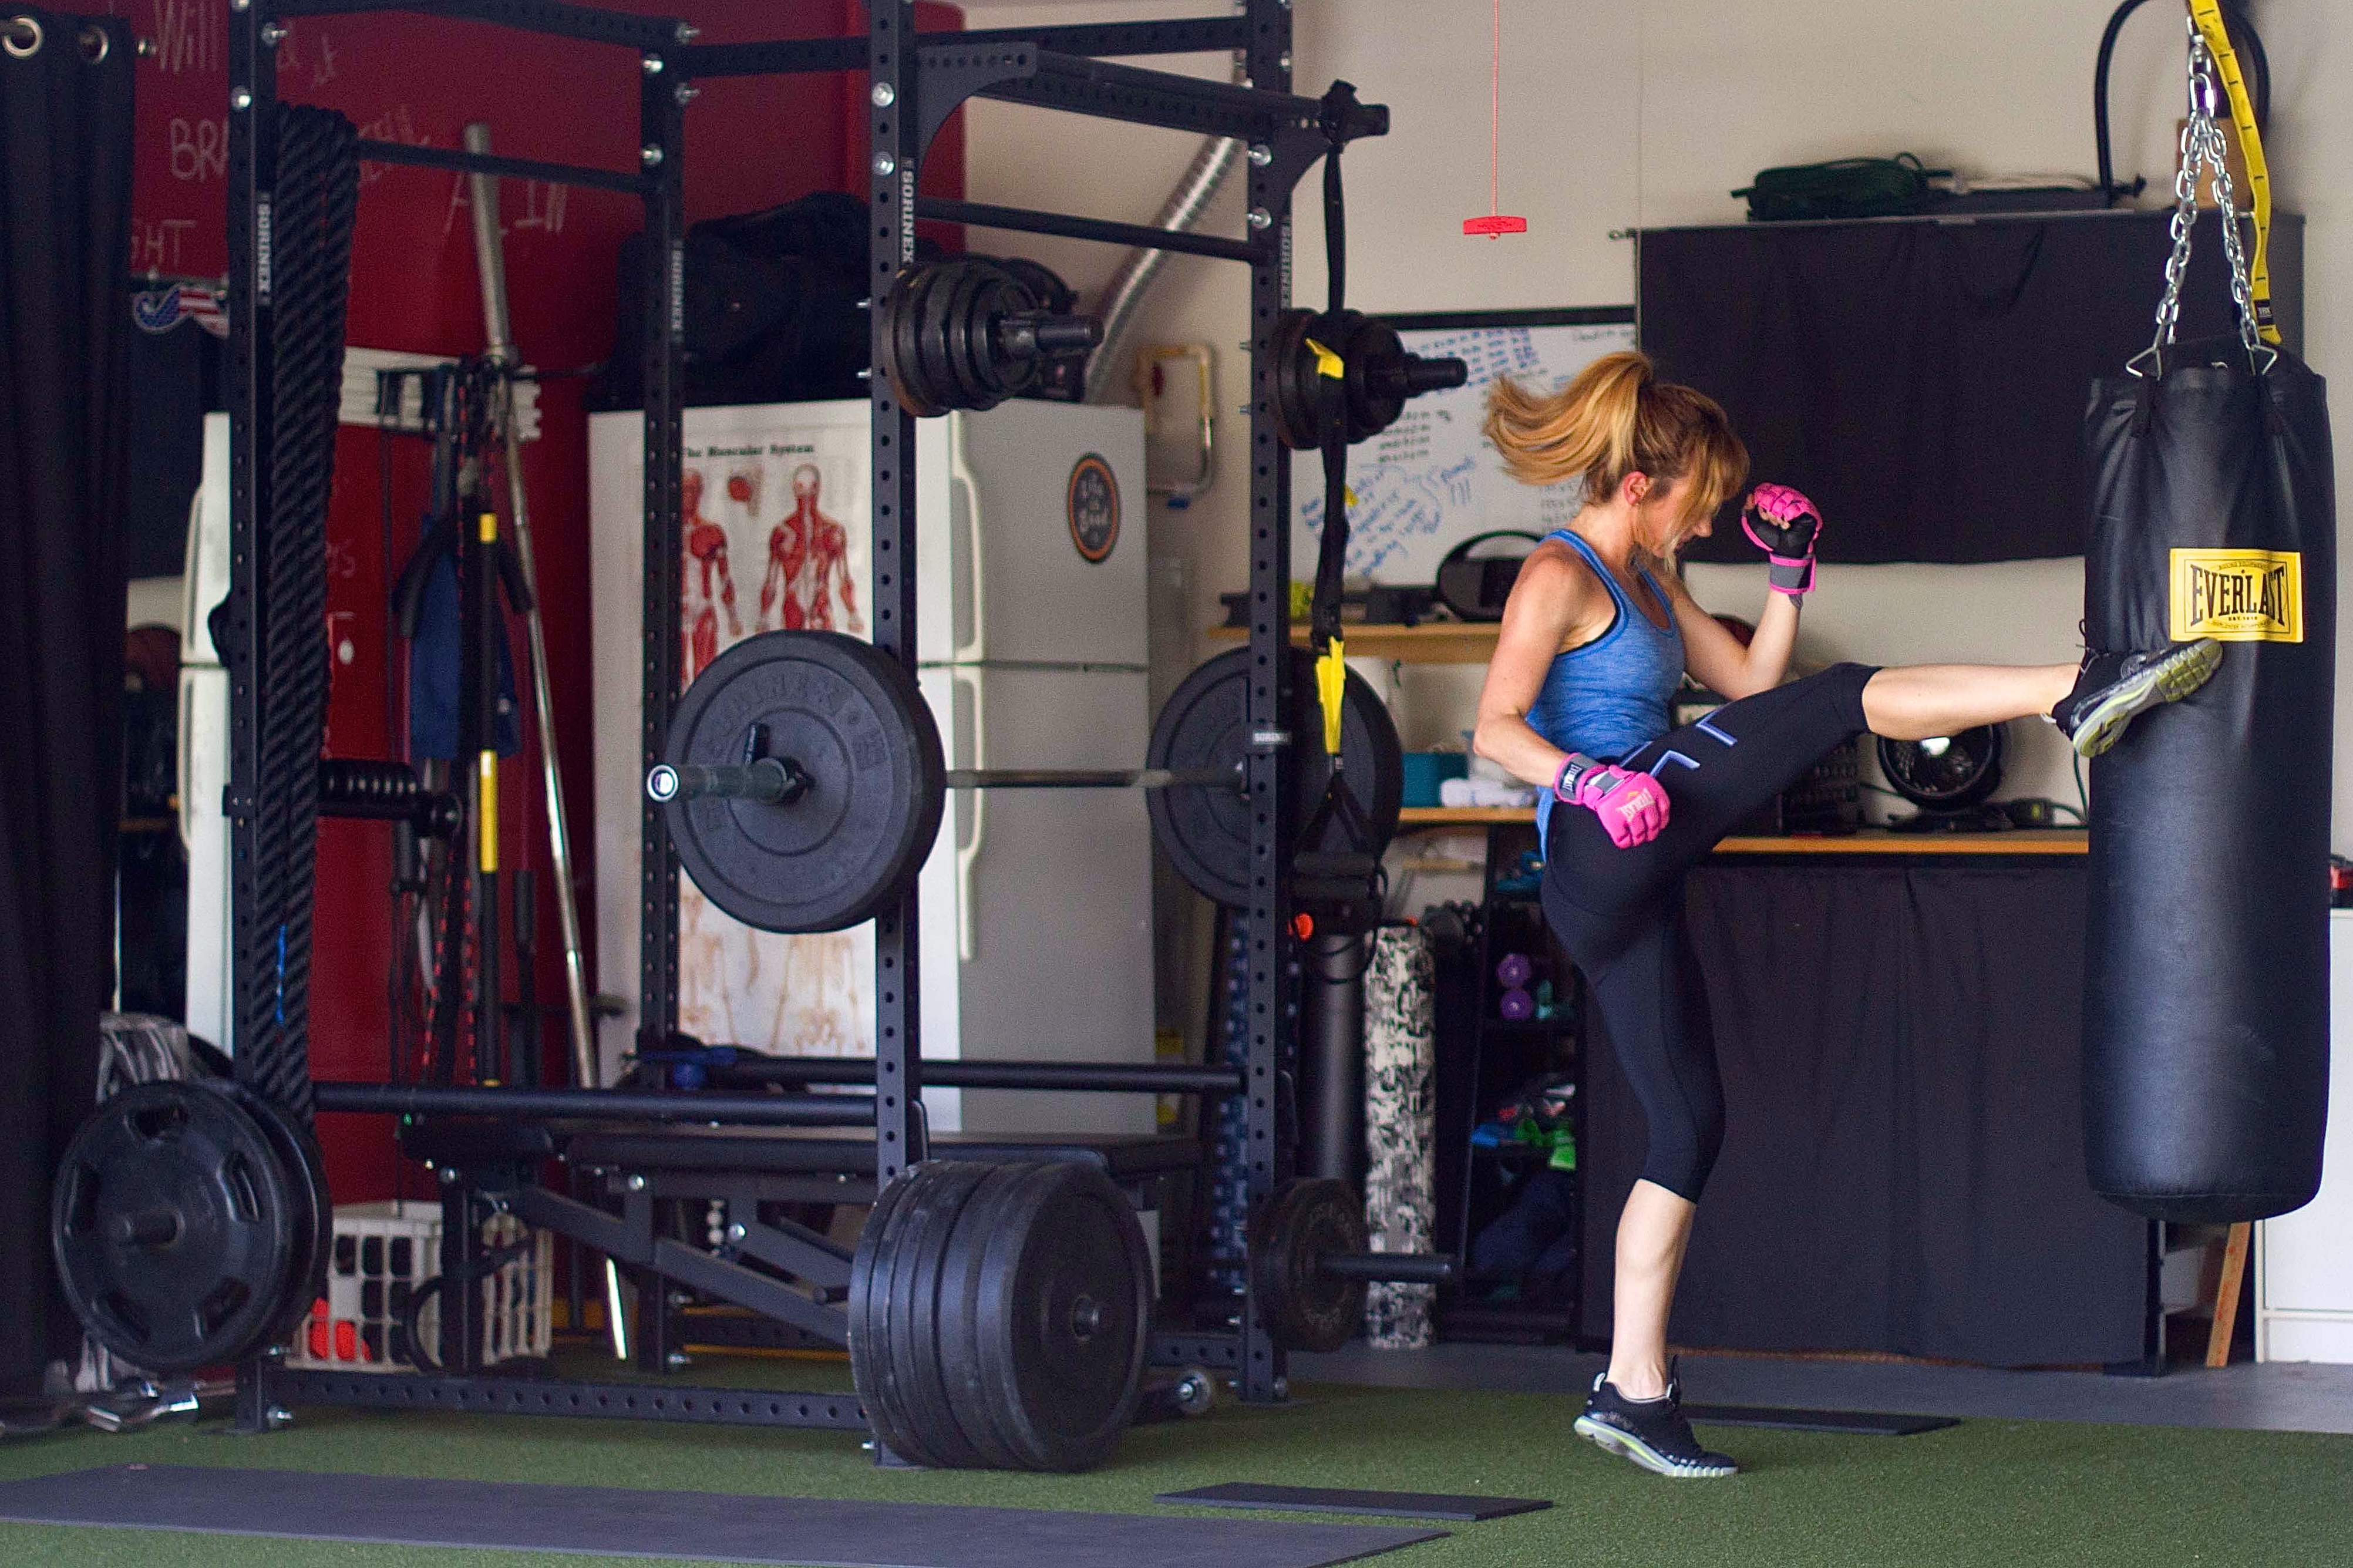 Garage gym evolution creating the ultimate home training space